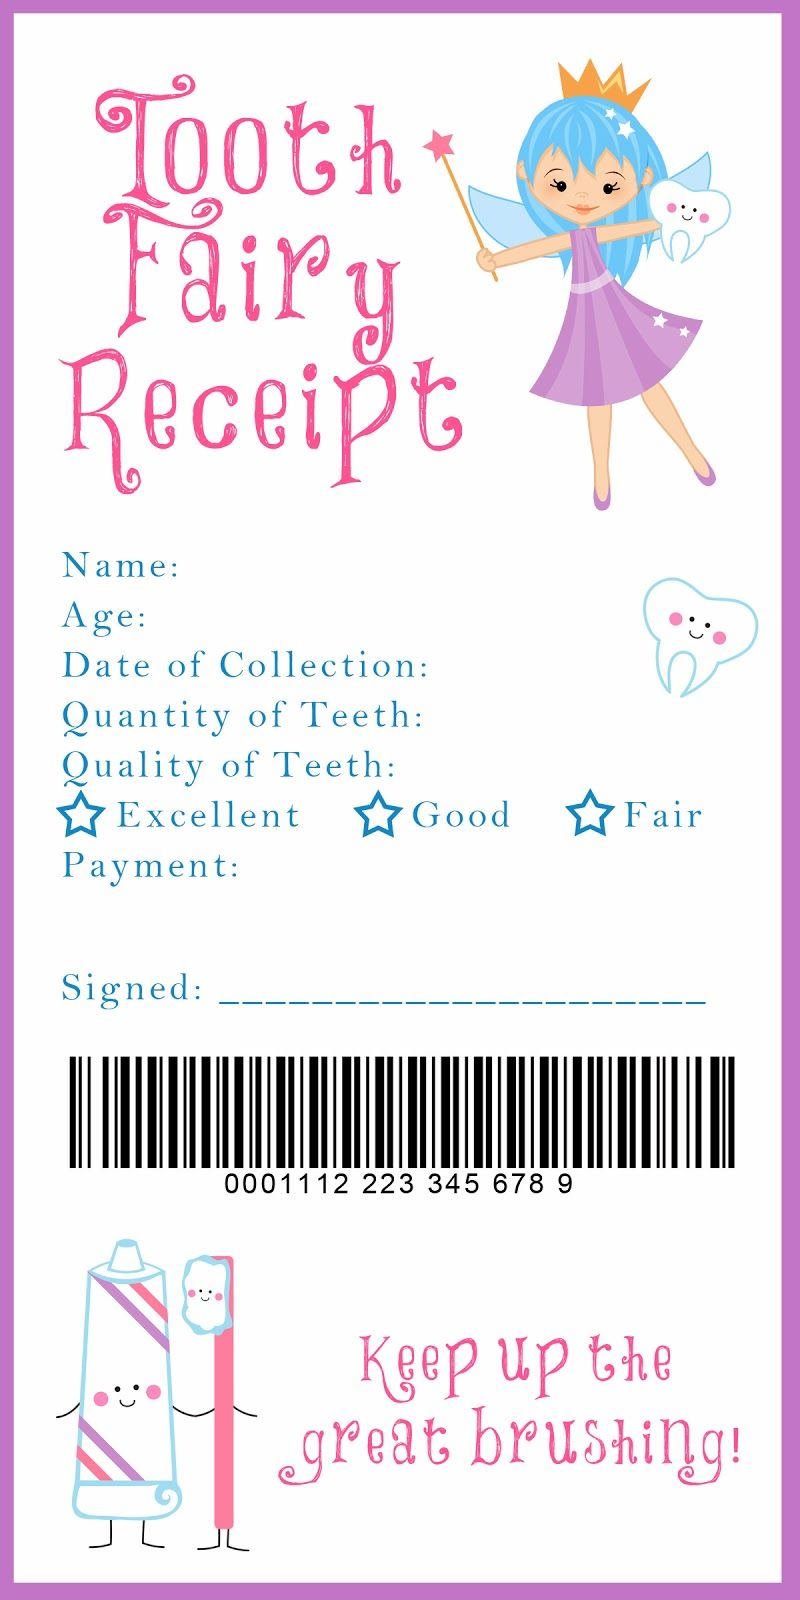 image regarding Free Printable Tooth Fairy Receipt identified as Teeth Fairy Receipt Printable. These types of a lovable principle! Accurately for